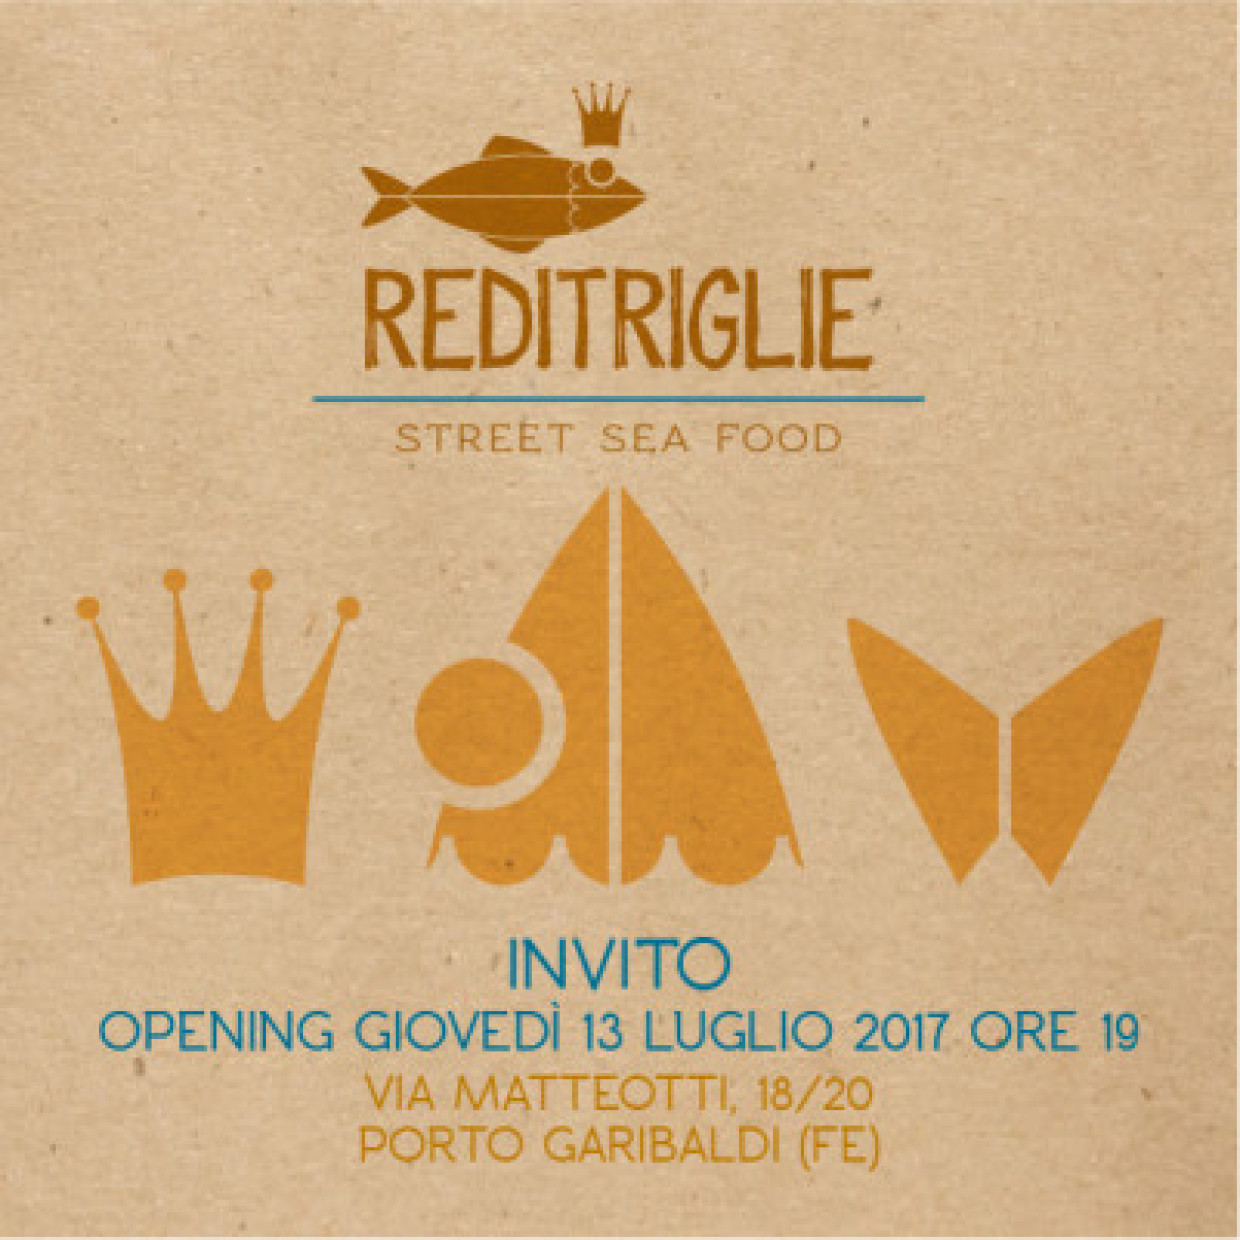 DURELLO E STREET FOOD: REDITRIGLIE